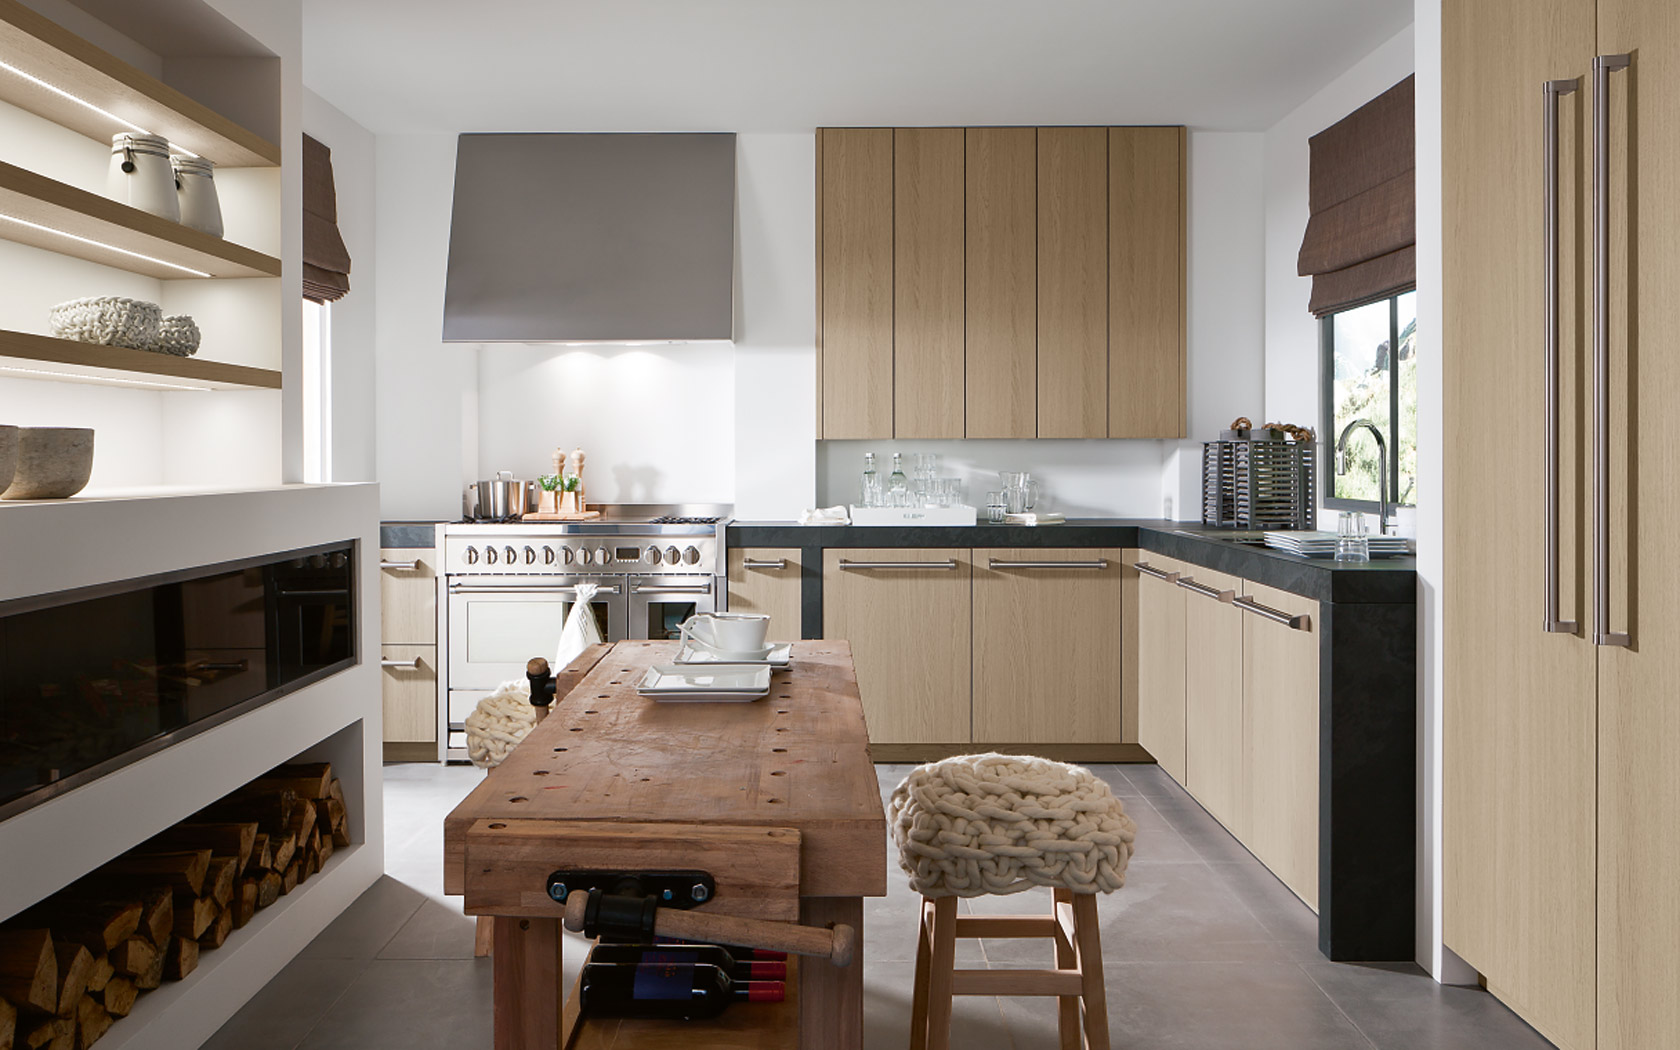 Citycountry kitchen by siematic for Siematic kitchen design